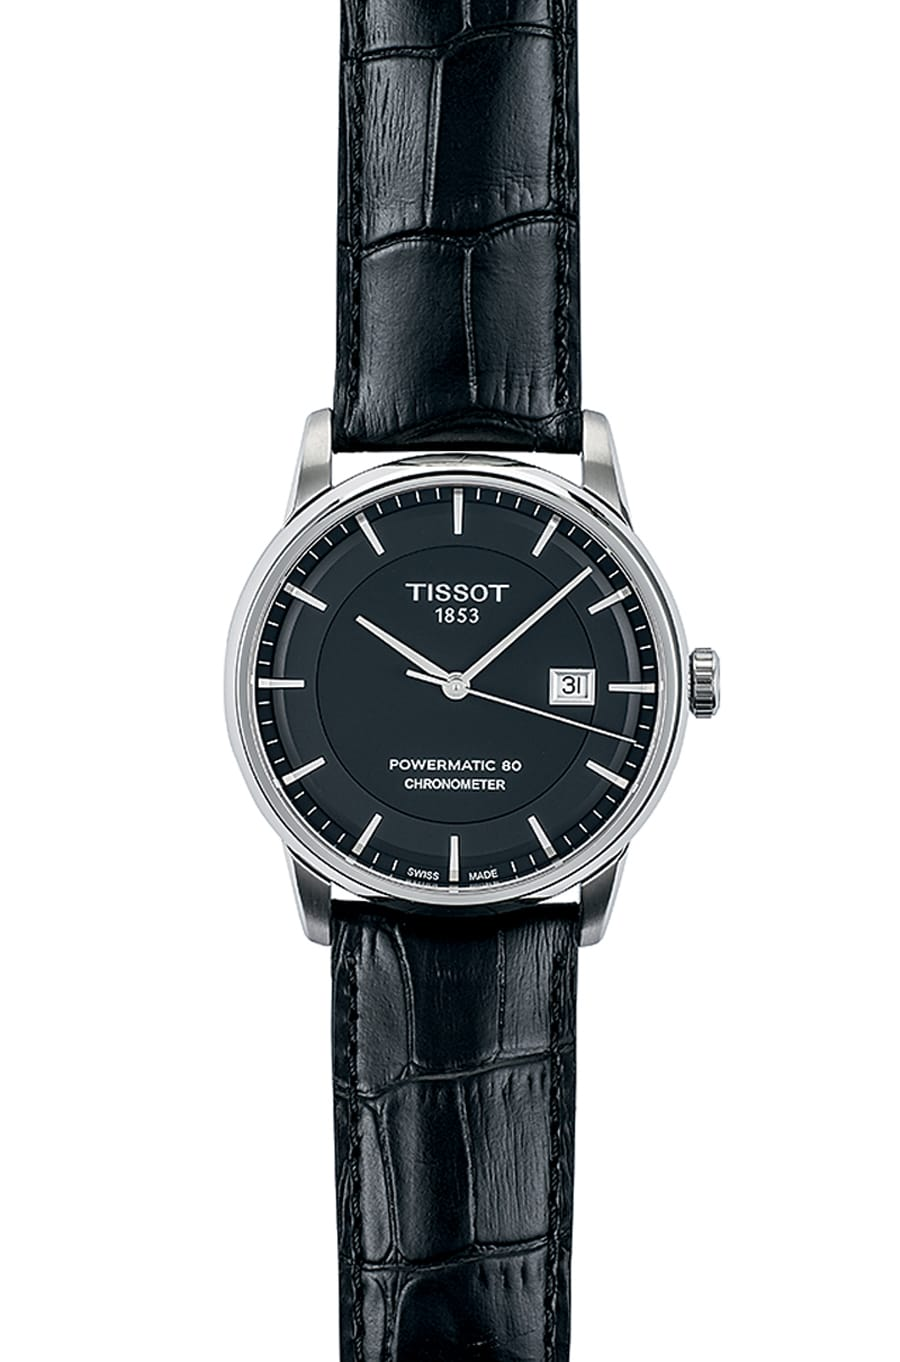 Tissot: Luxury Automatic COSC